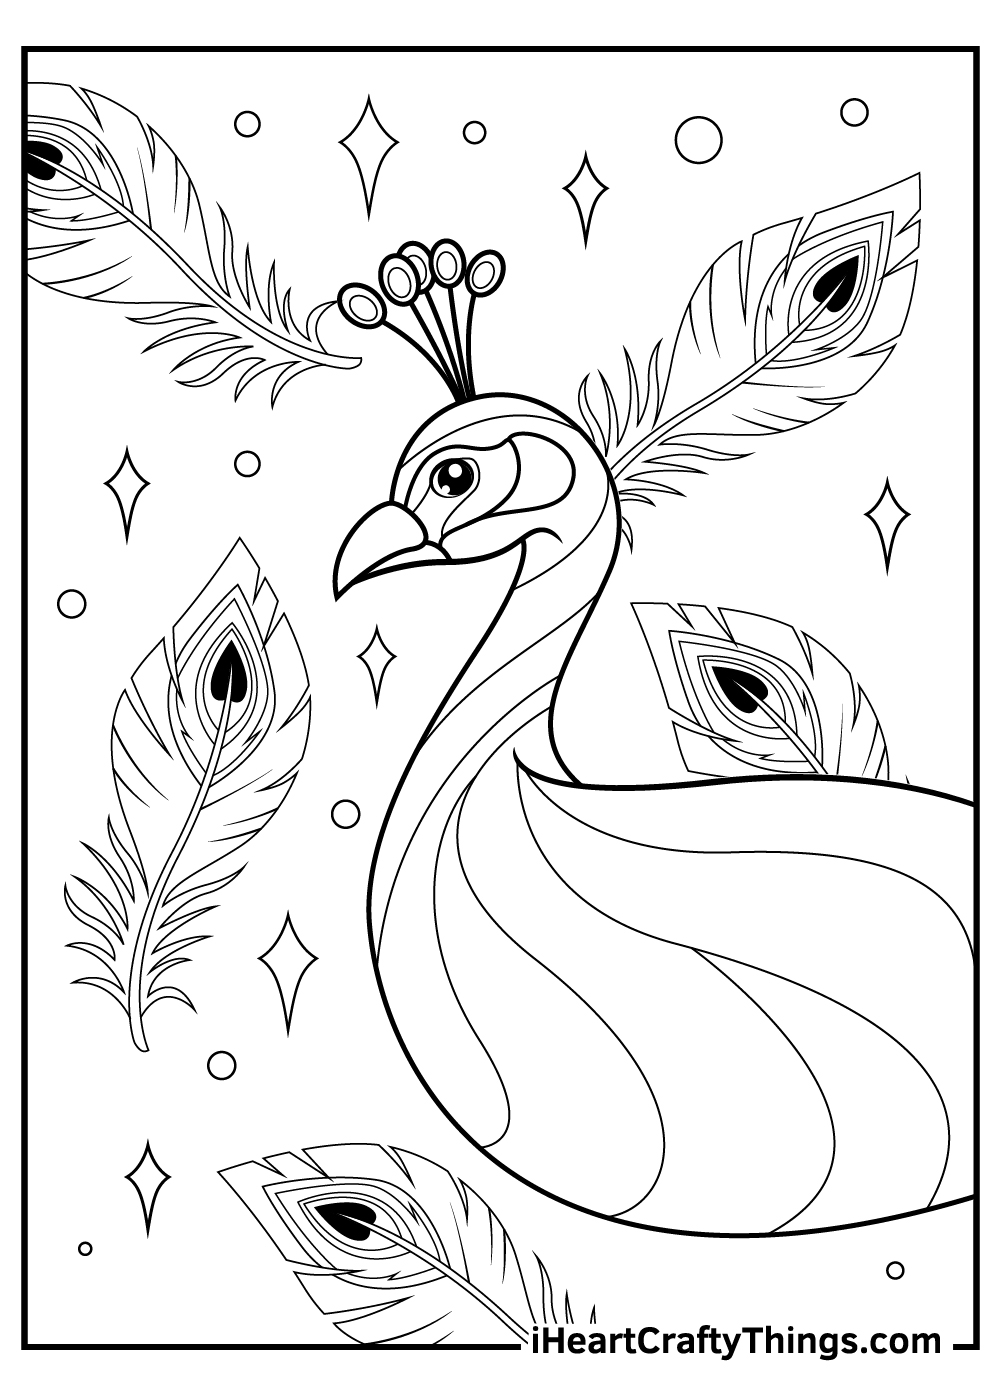 peacock coloring pages with feathers